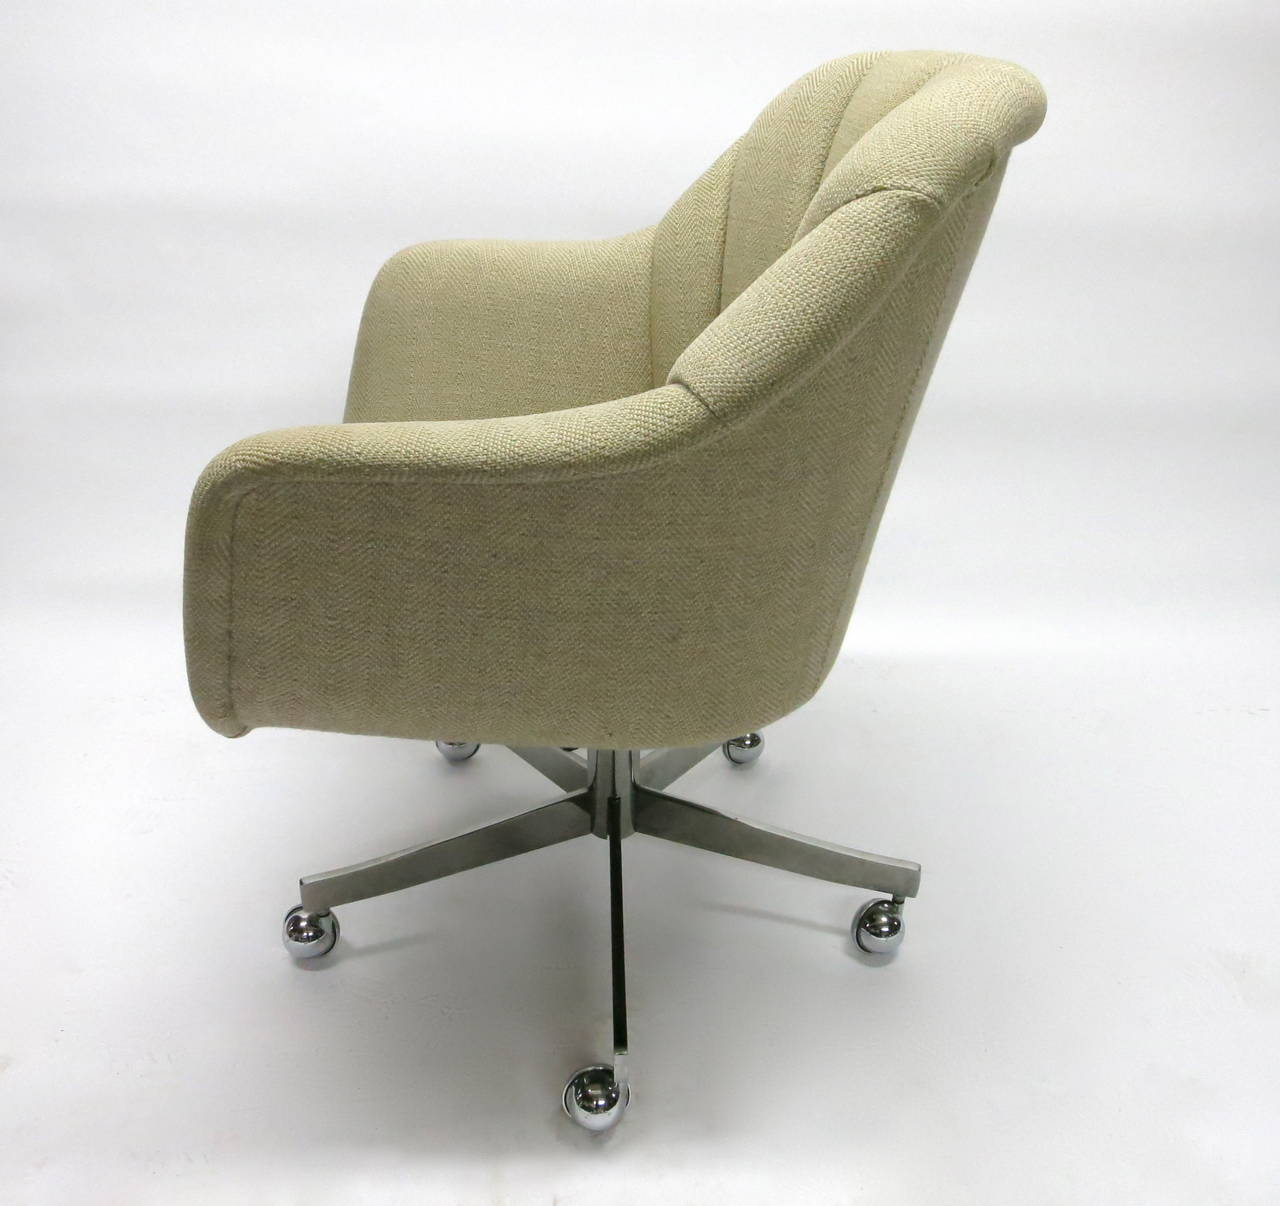 desk chair made covers b&q single swivel by ward bennett for brickell